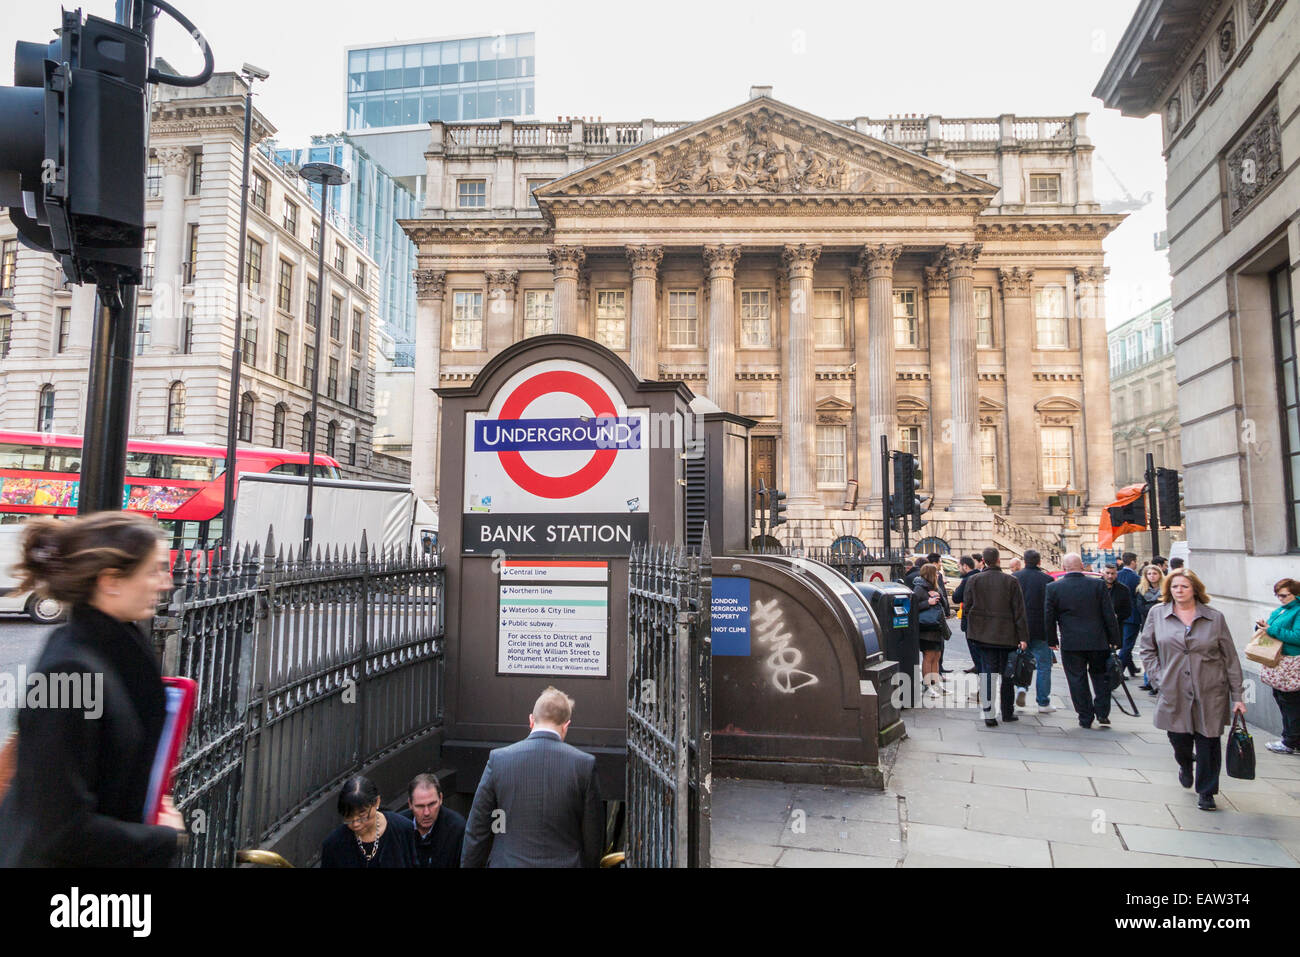 Transport and commuting: Bank London Underground station entrance in Princes Street the City of London, London Underground - Stock Image